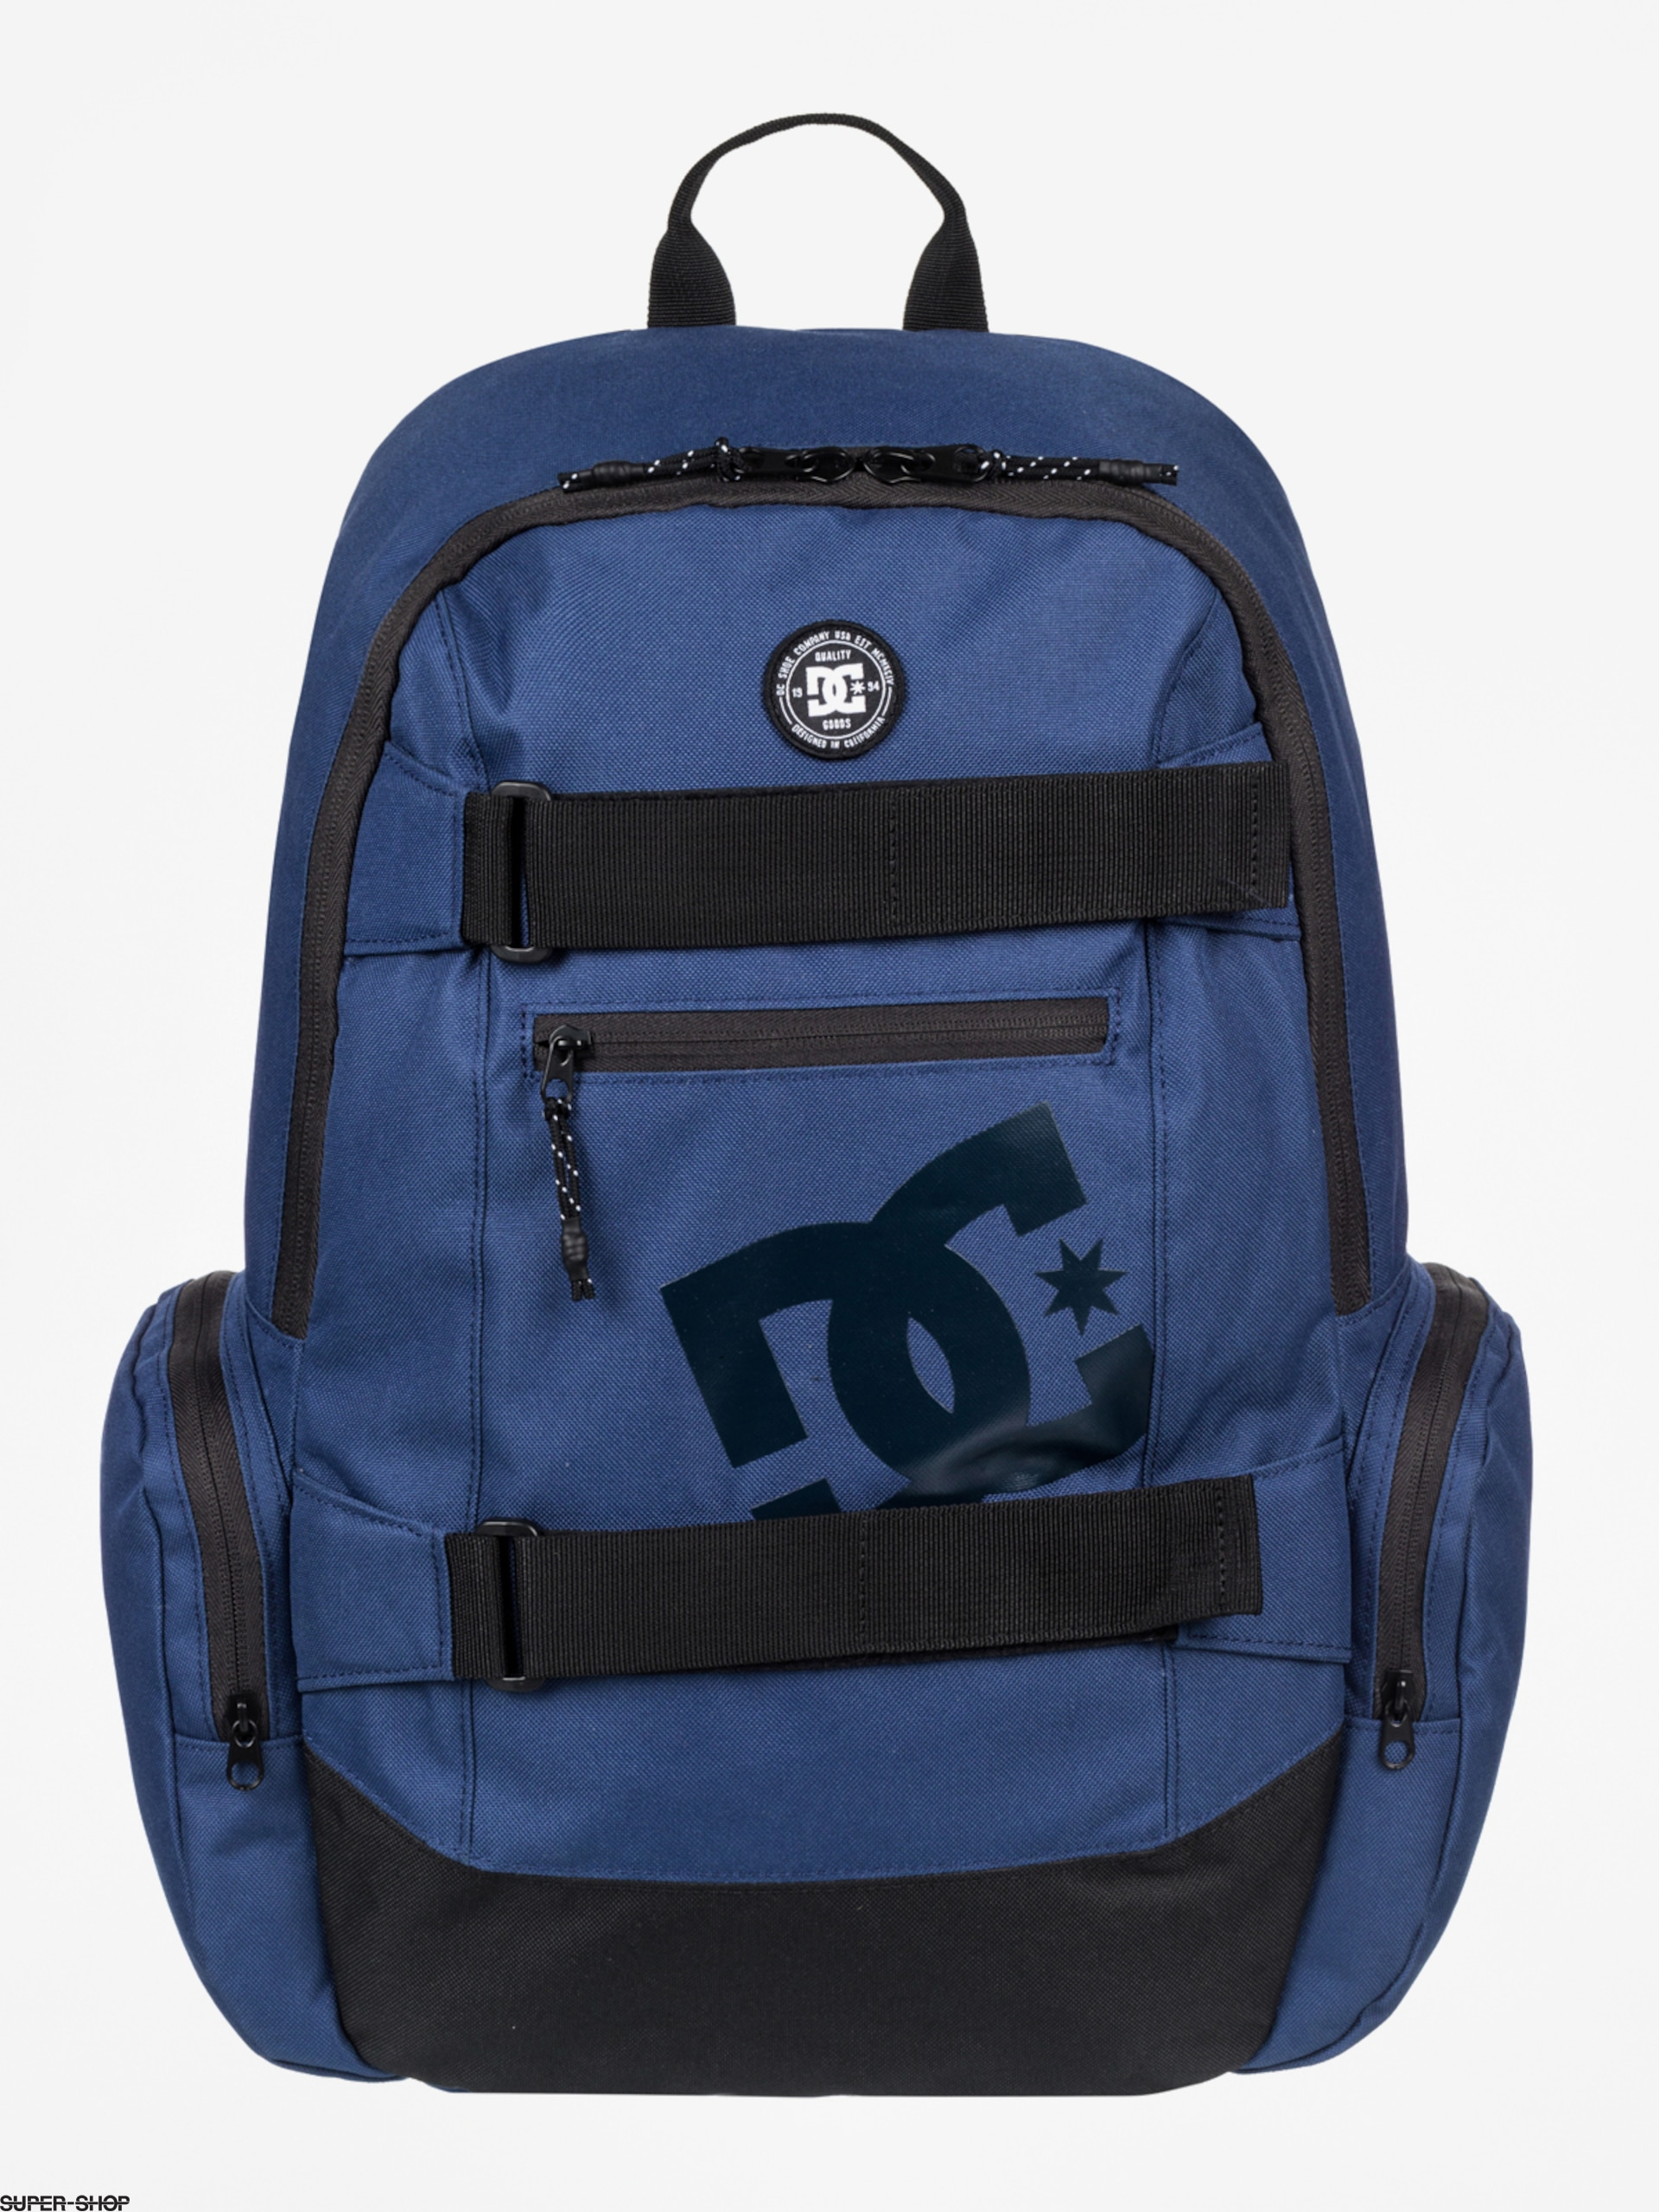 DC Backpack The Breed (washed indigo)